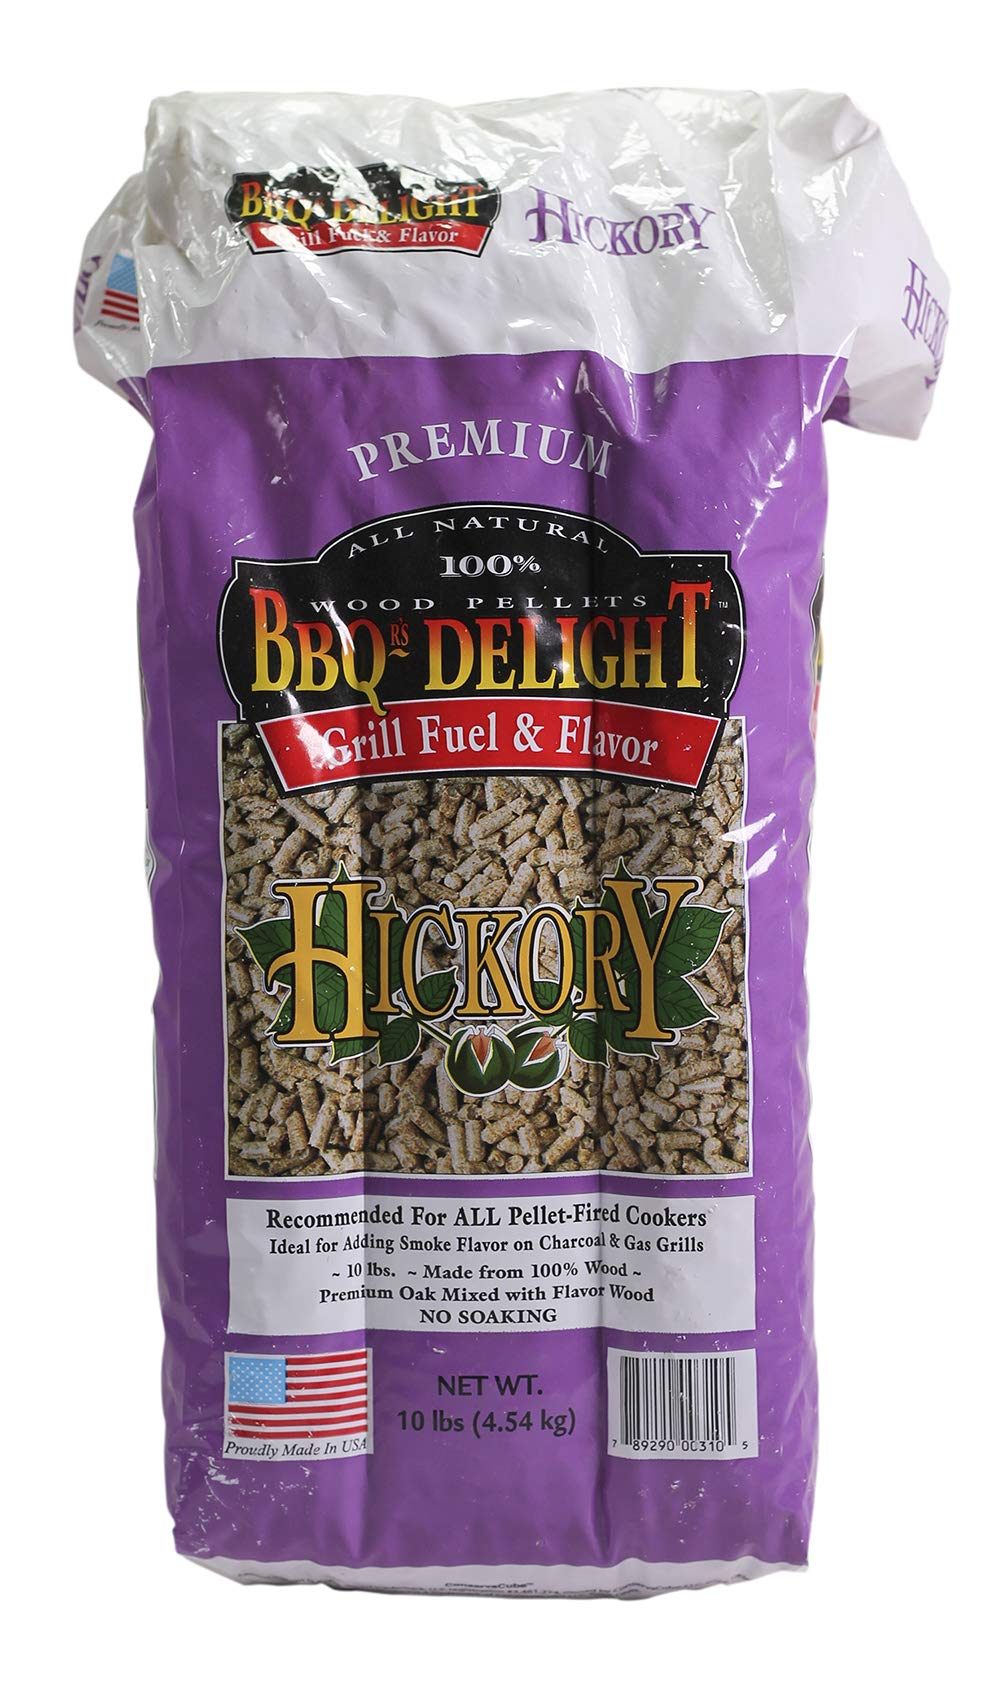 BBQR's Delight Hickory Wood Smoker Pellets 10 Pound Bag -All Types of Smokers or Grills